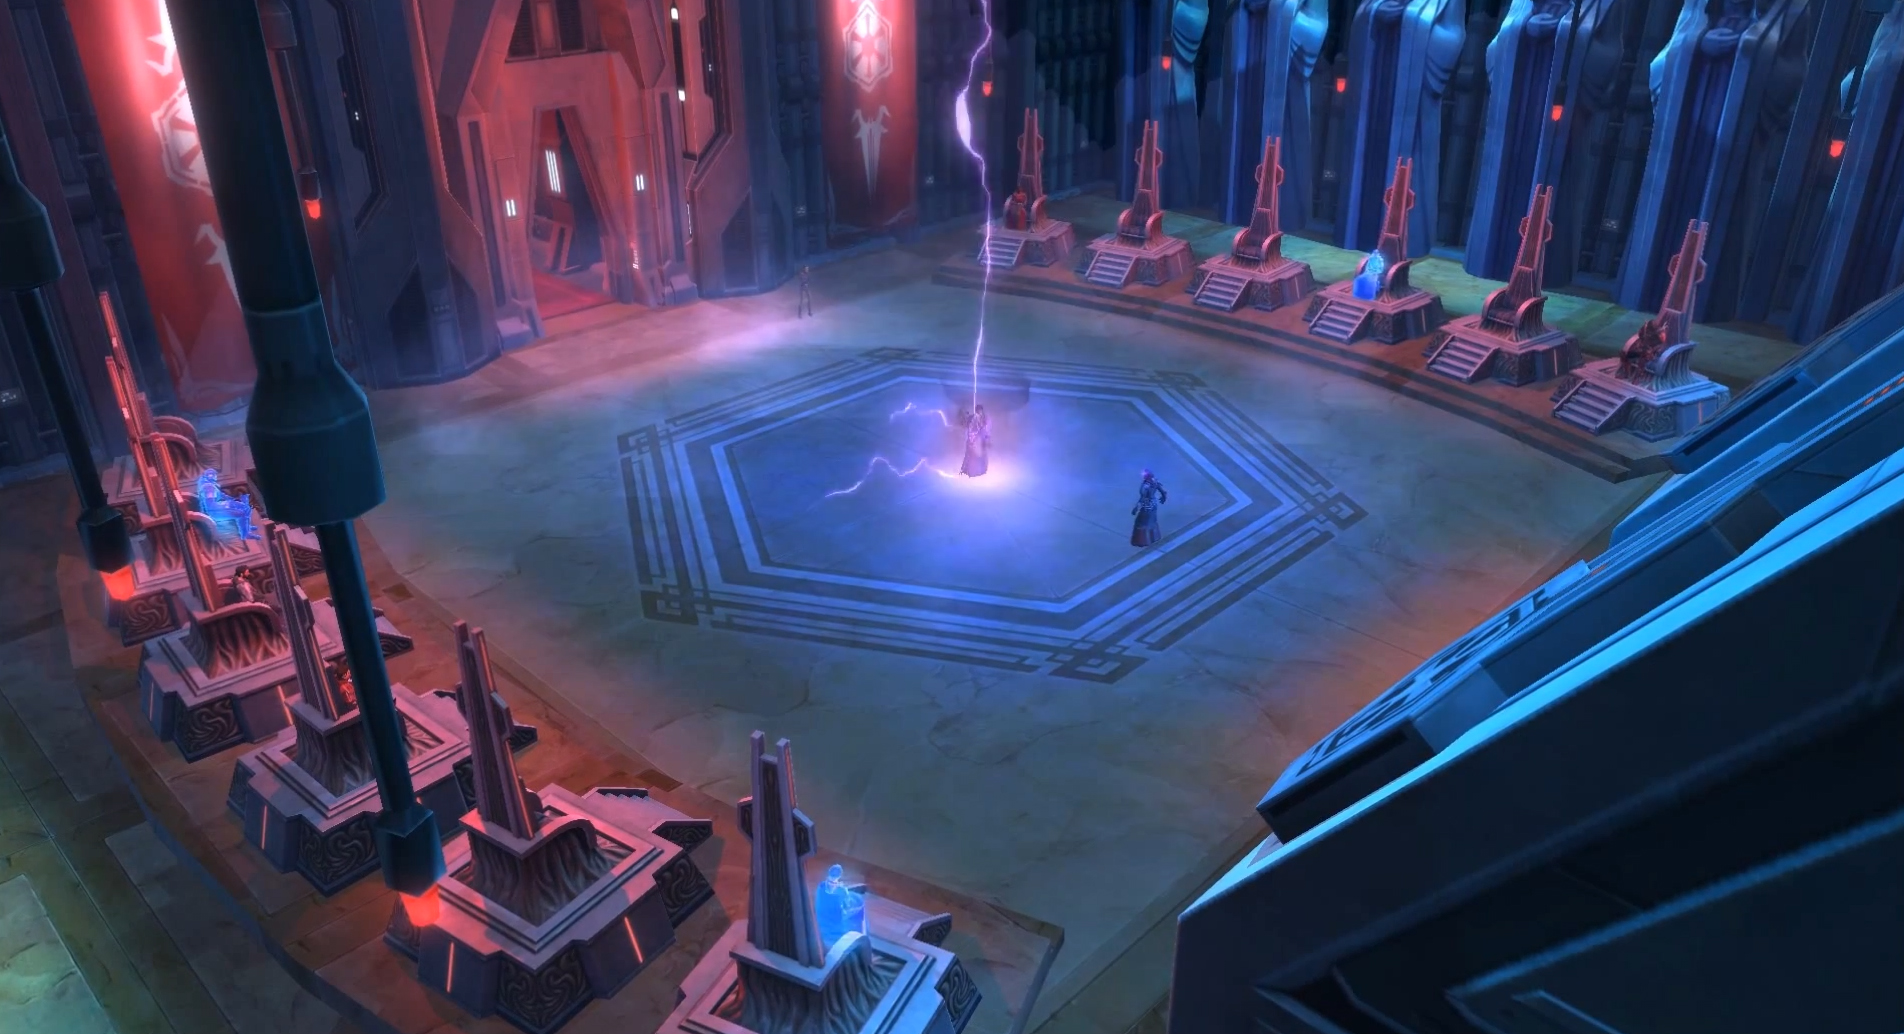 Duel in the Dark Council Chambers (Kaggath)